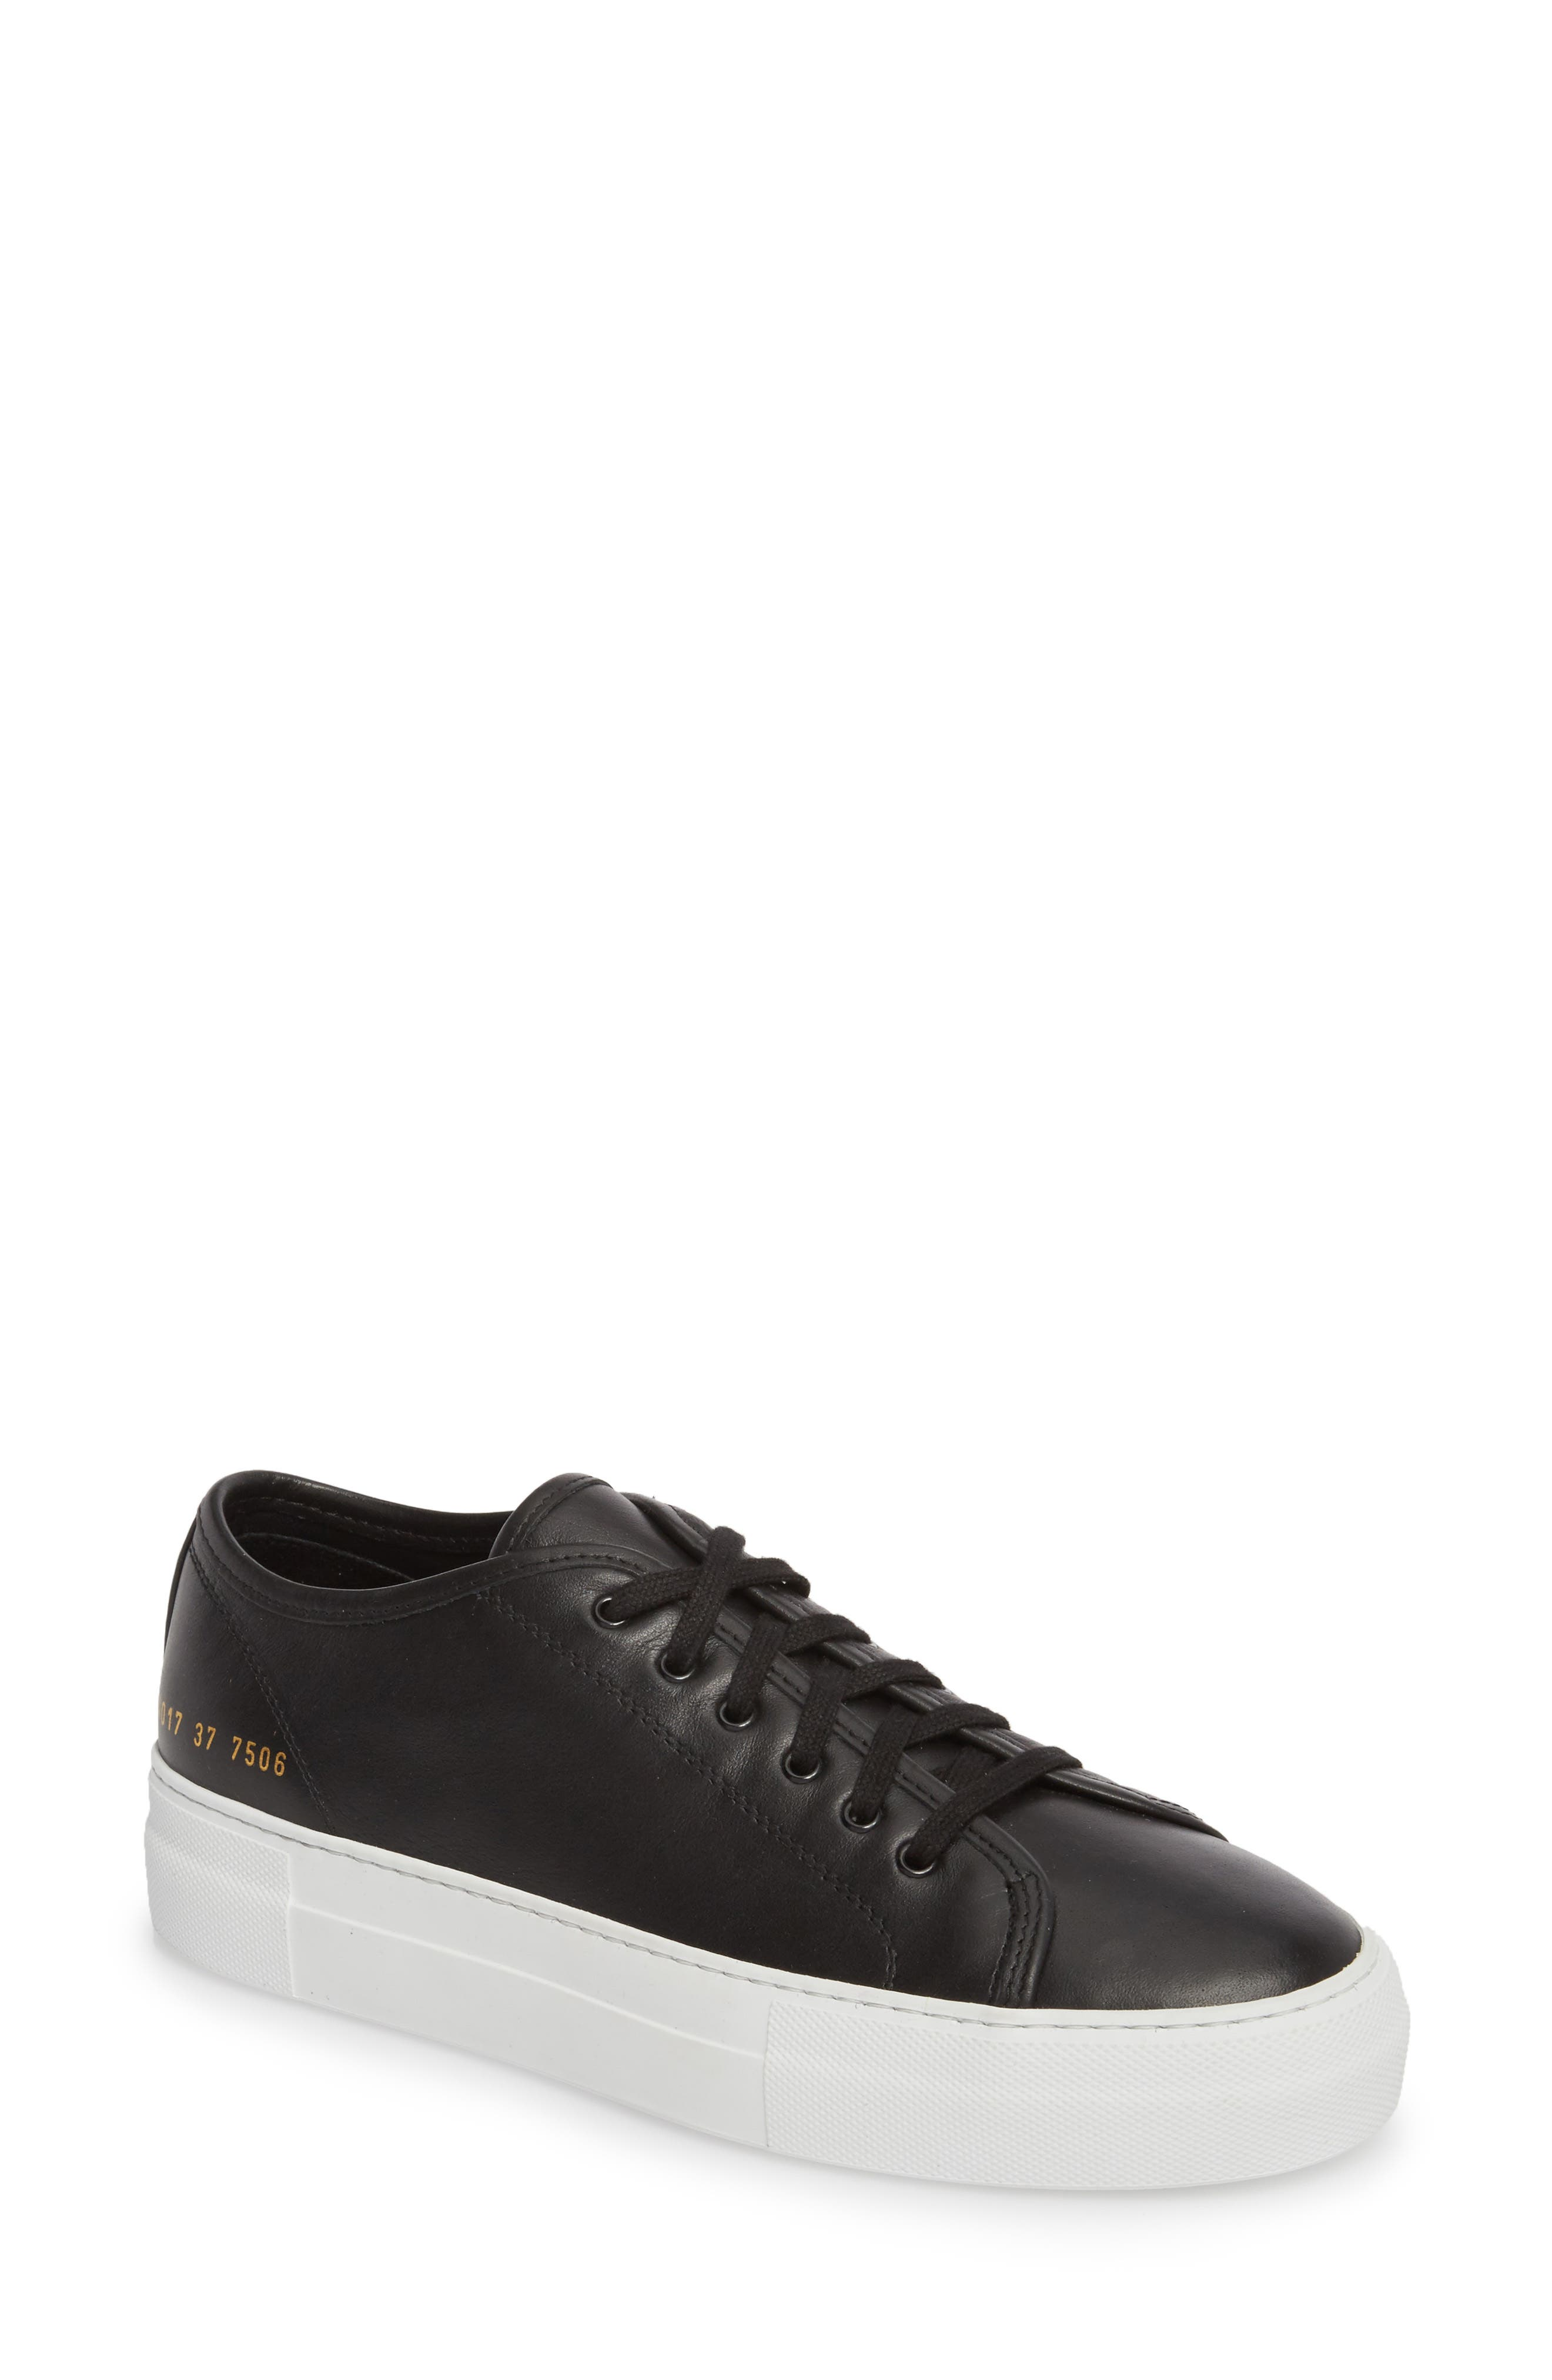 COMMON PROJECTS, Tournament Low Top Sneaker, Main thumbnail 1, color, BLACK